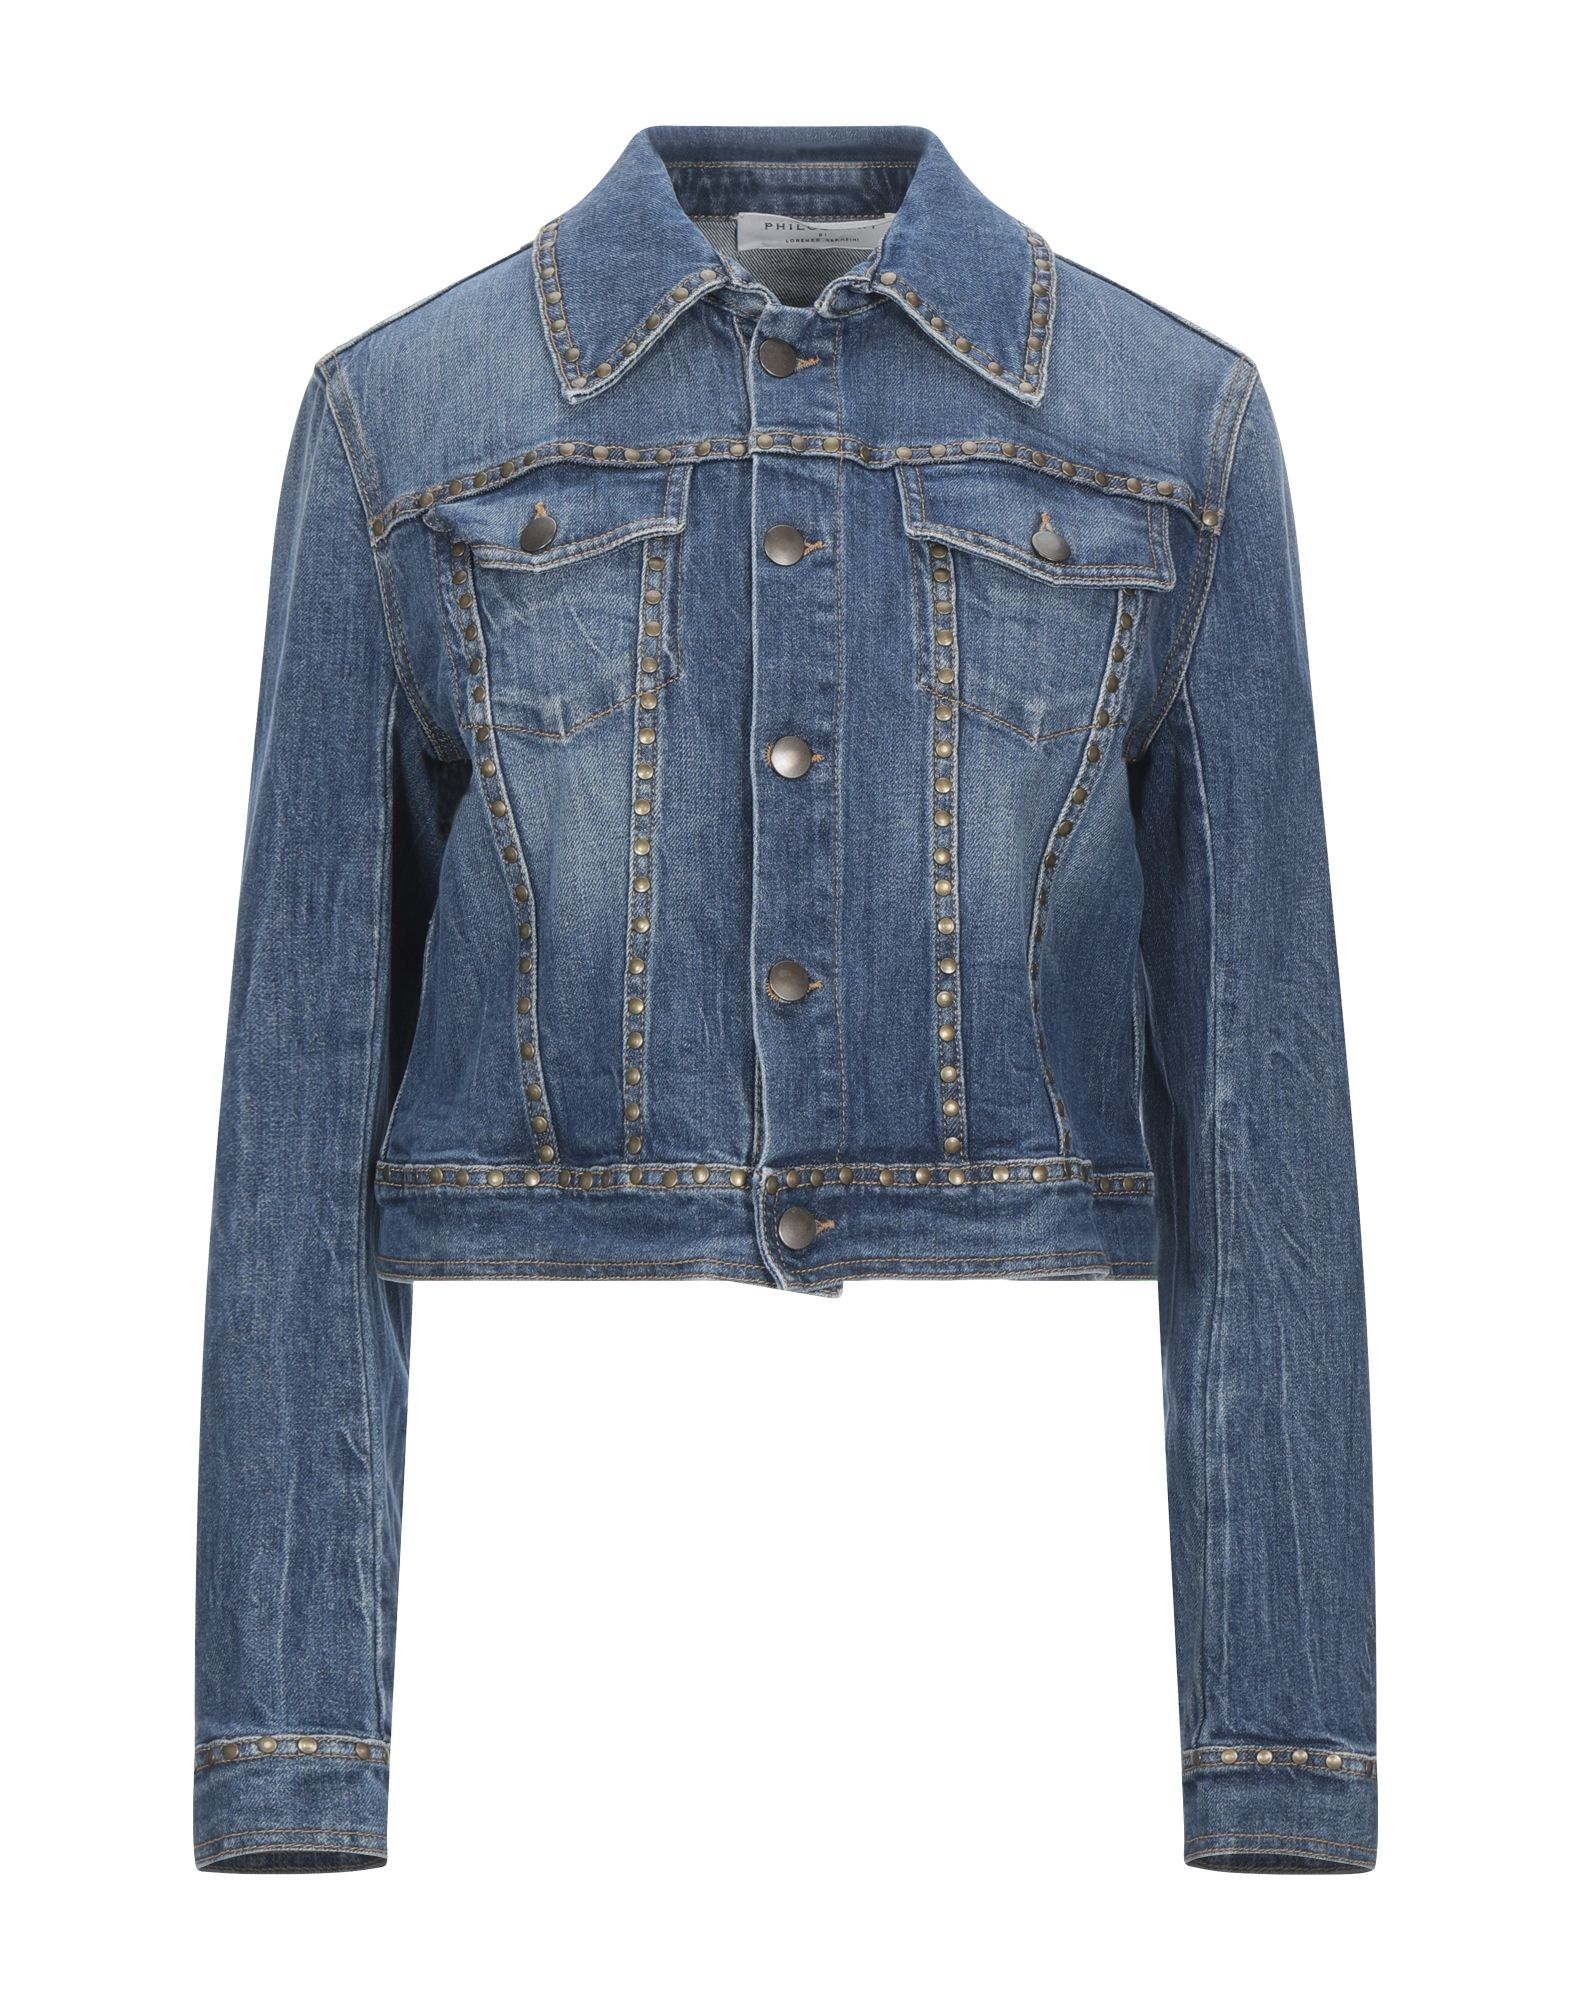 PHILOSOPHY di LORENZO SERAFINI Denim outerwear. denim, contrasting applications, studs, lamé, solid color, medium wash, long sleeves, classic neckline, buttoned cuffs, single-breasted, front closure, button closing, multipockets, stretch. 98% Cotton, 2% Elastane